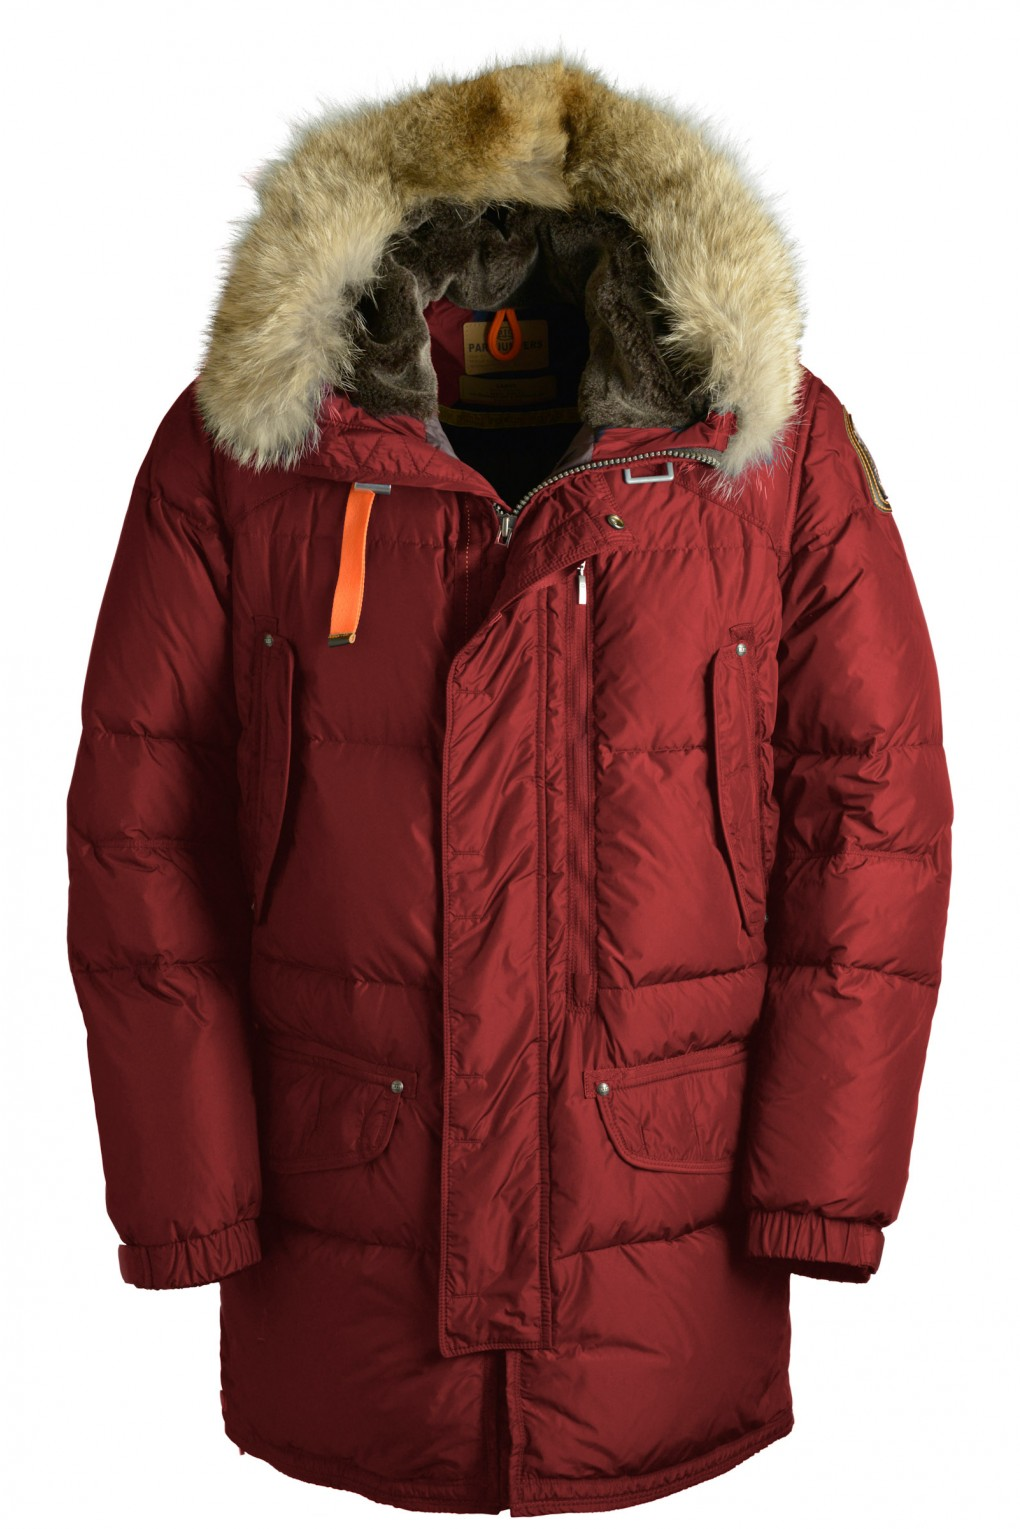 parajumpers HARRASEEKET man outerwear Red